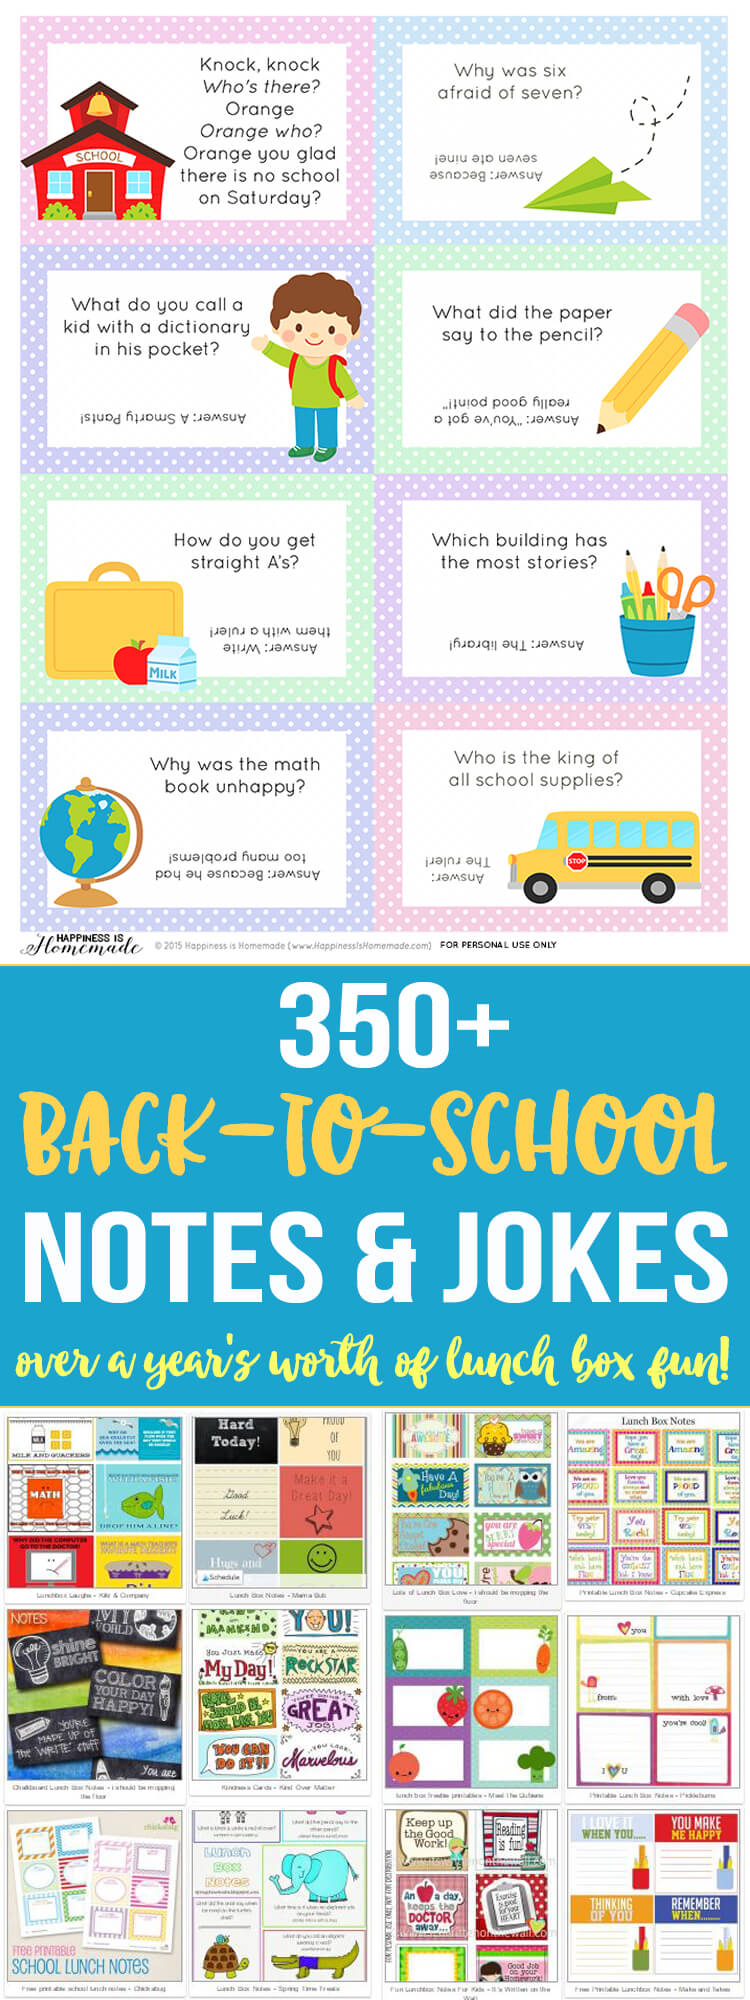 graphic about Lunch Box Jokes Printable referred to as Again-in direction of-College or university Lunch Box Jokes Notes - Pleasure is Selfmade